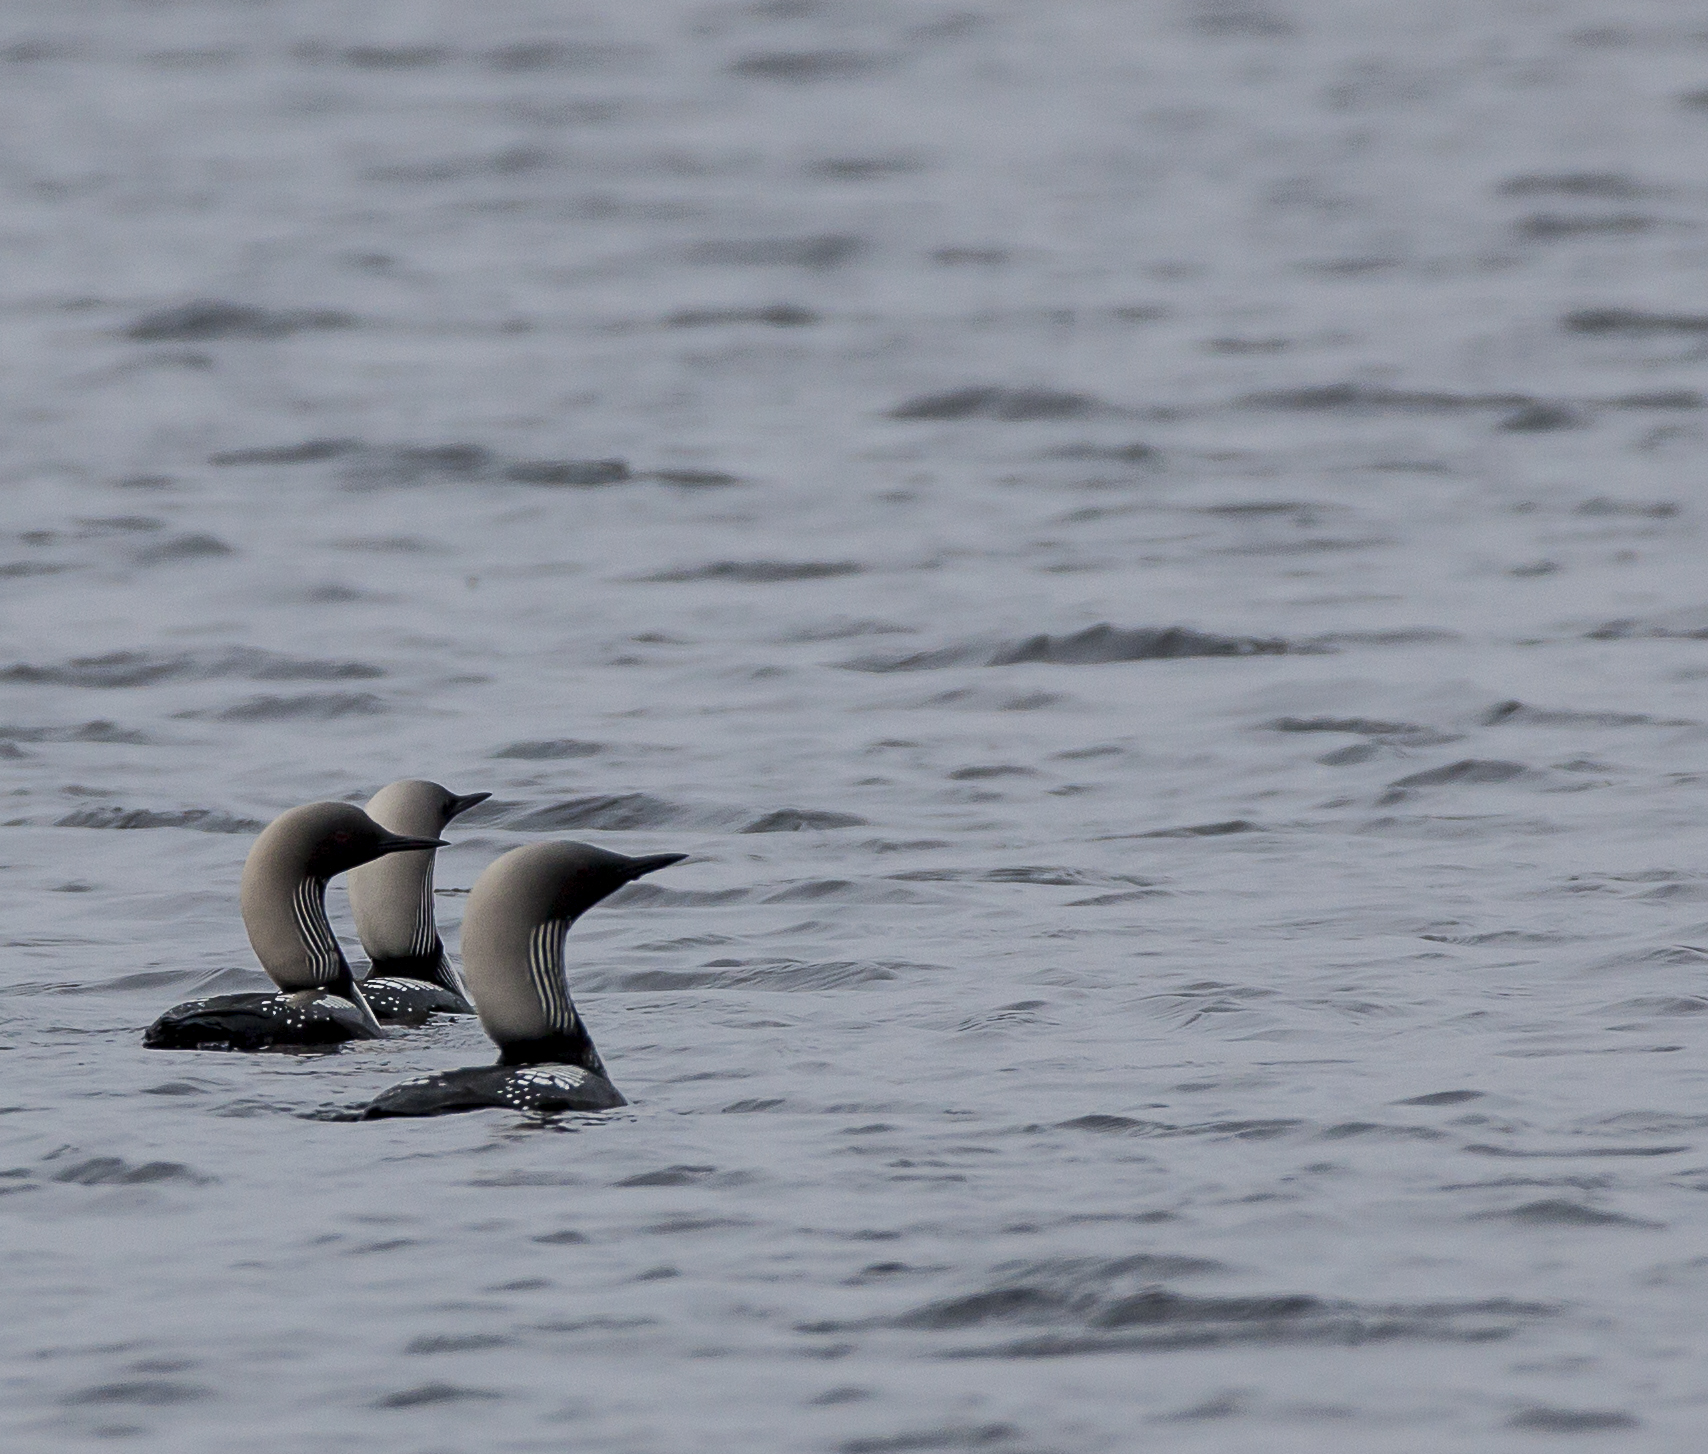 Three loons in the water